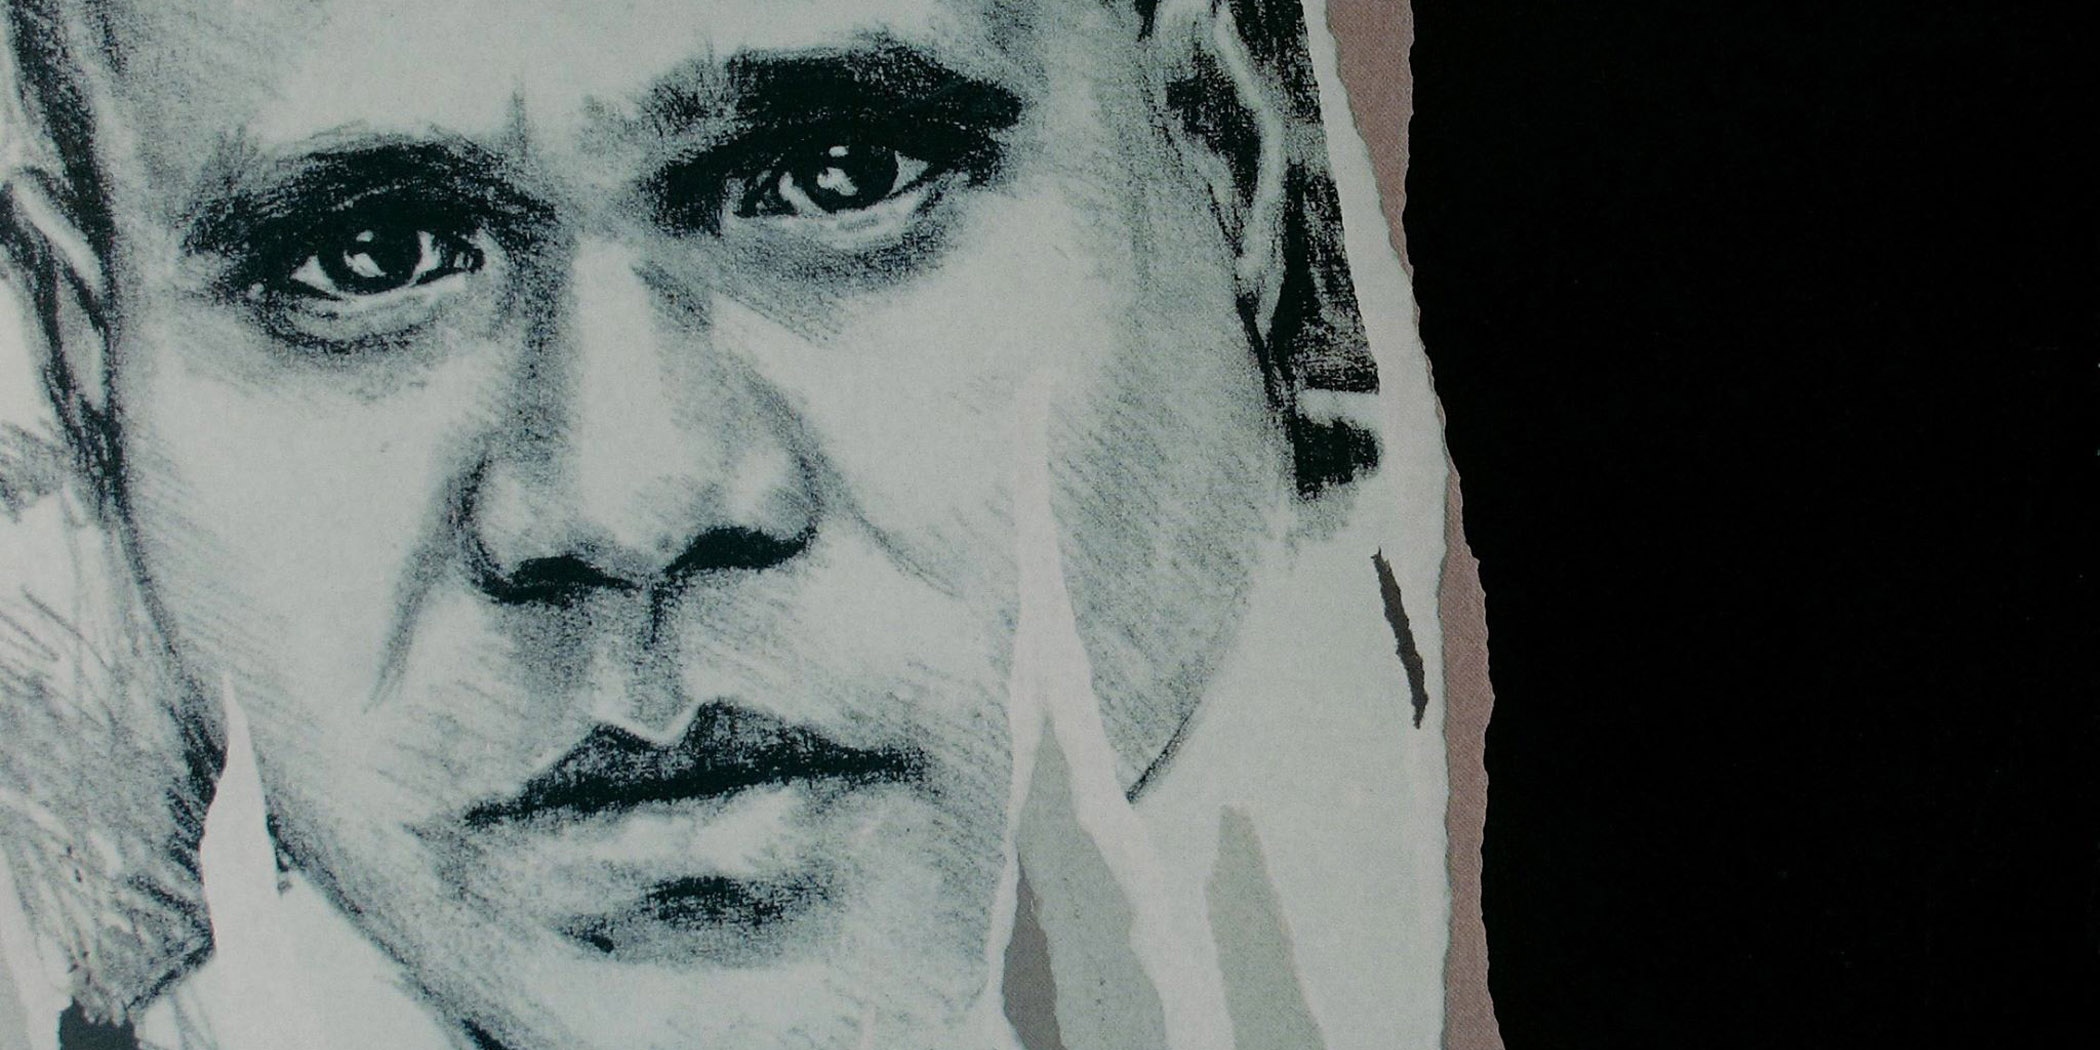 Section of 'Charcoal Lane' by Archie Roach